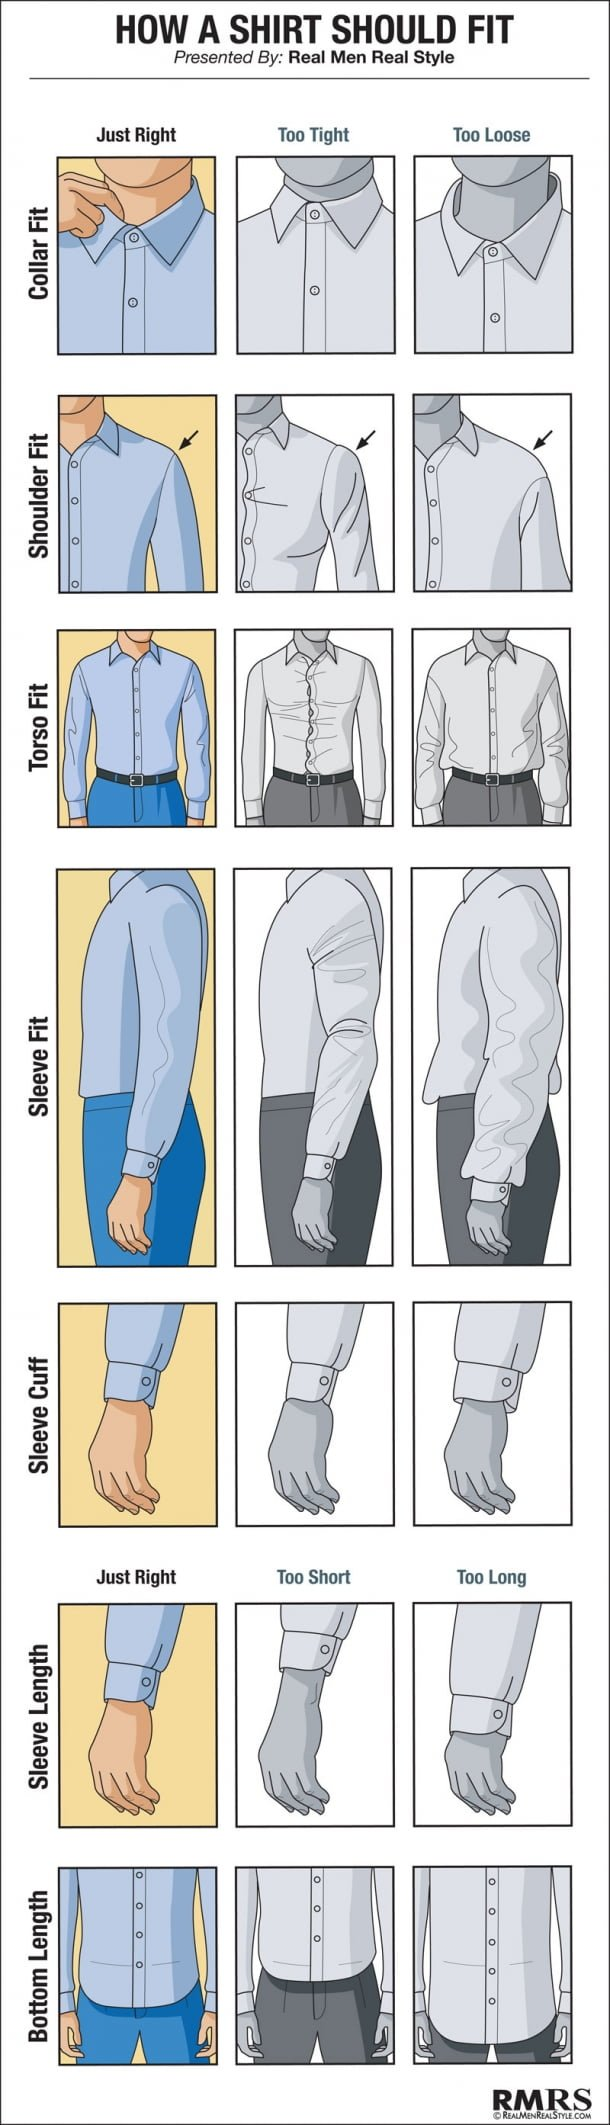 How-A-Shirt-Should-Fit-Infographic-RMRS-8001